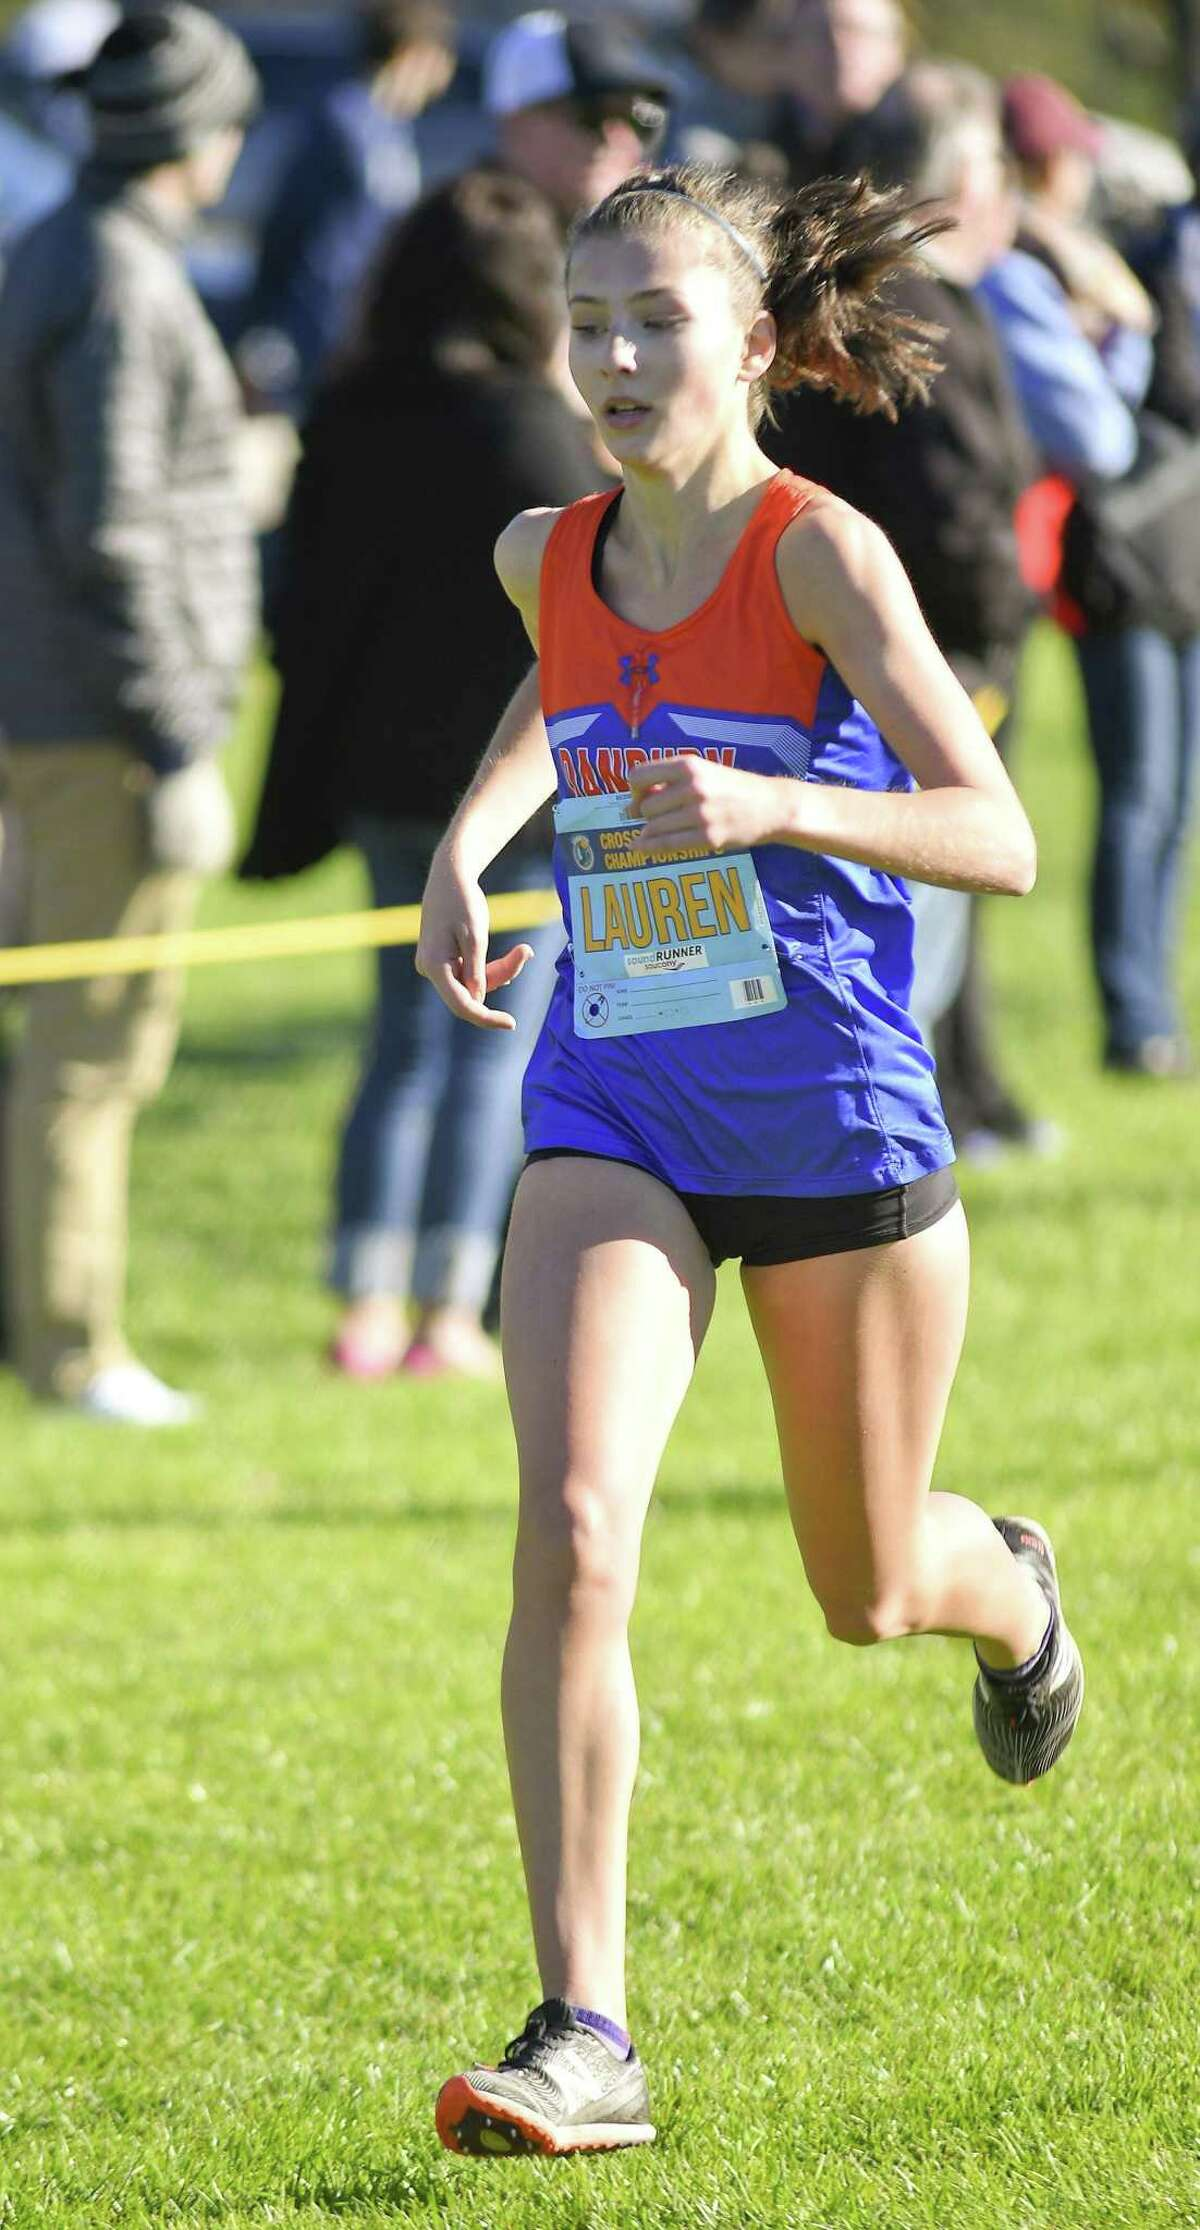 Danbury's Lauren Moore heads to the finish line during the 2018 Cross Country Championships at Waveny Park in New Canaan, Connecticut., Thursday, Oct. 18, 2018. Moore was edged out of first place, at the line by Ridgefield's Gabriella Viggiano, who finished with a time of 14:39.07 to Moore's 14:39.53.